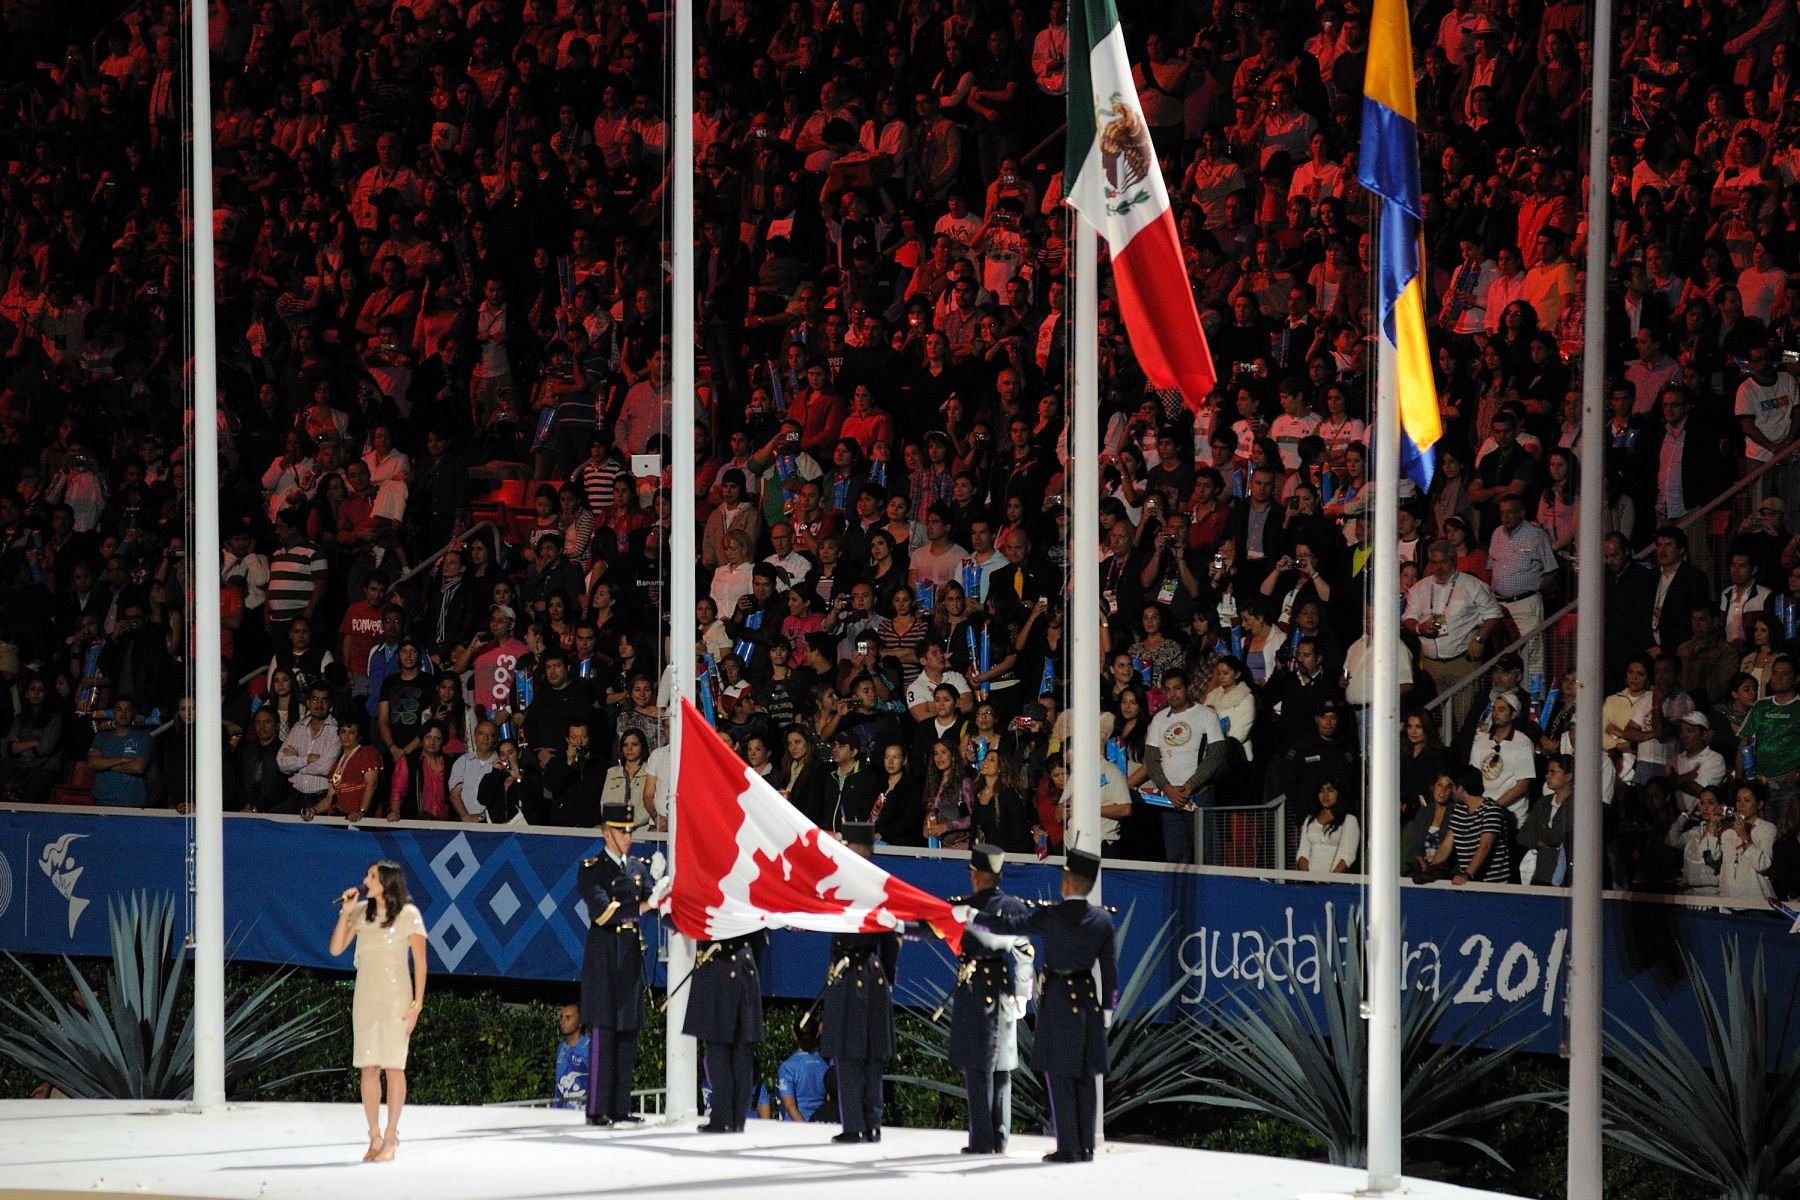 The Governor General witnessed the handover of the Pan American Games' flag to Toronto officials, as the city will host the Games in 2015